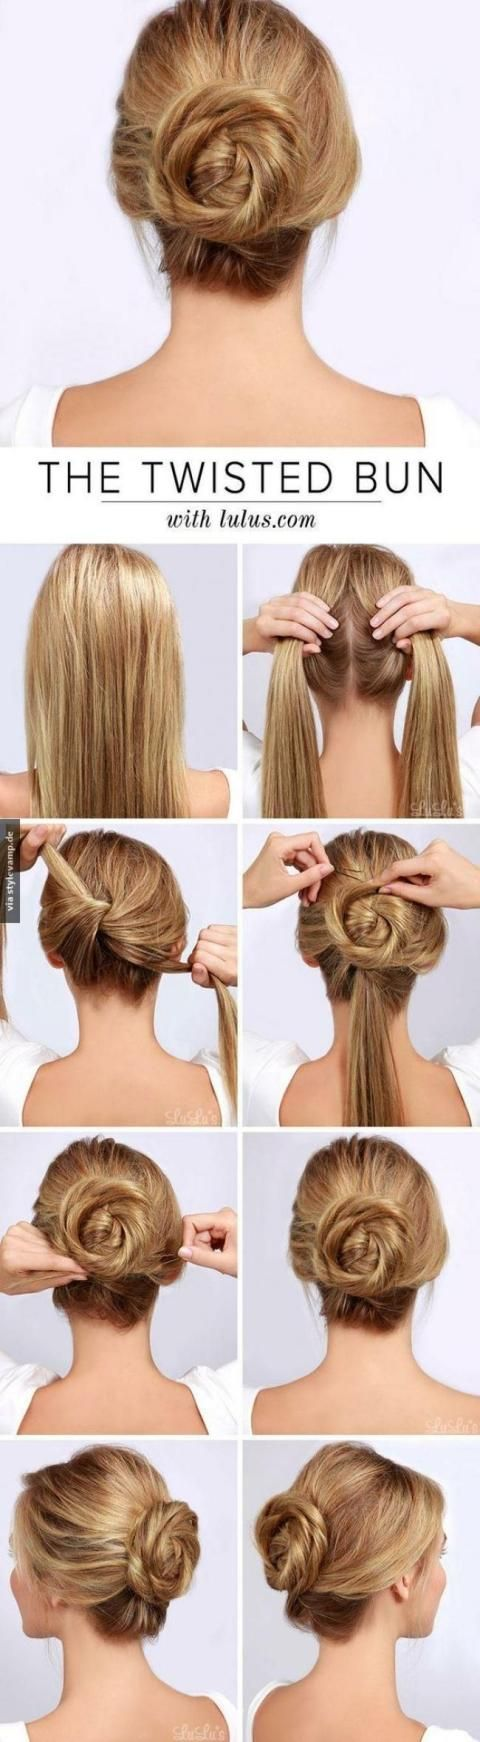 10easy hairstyles for aneffortlessly stylish look